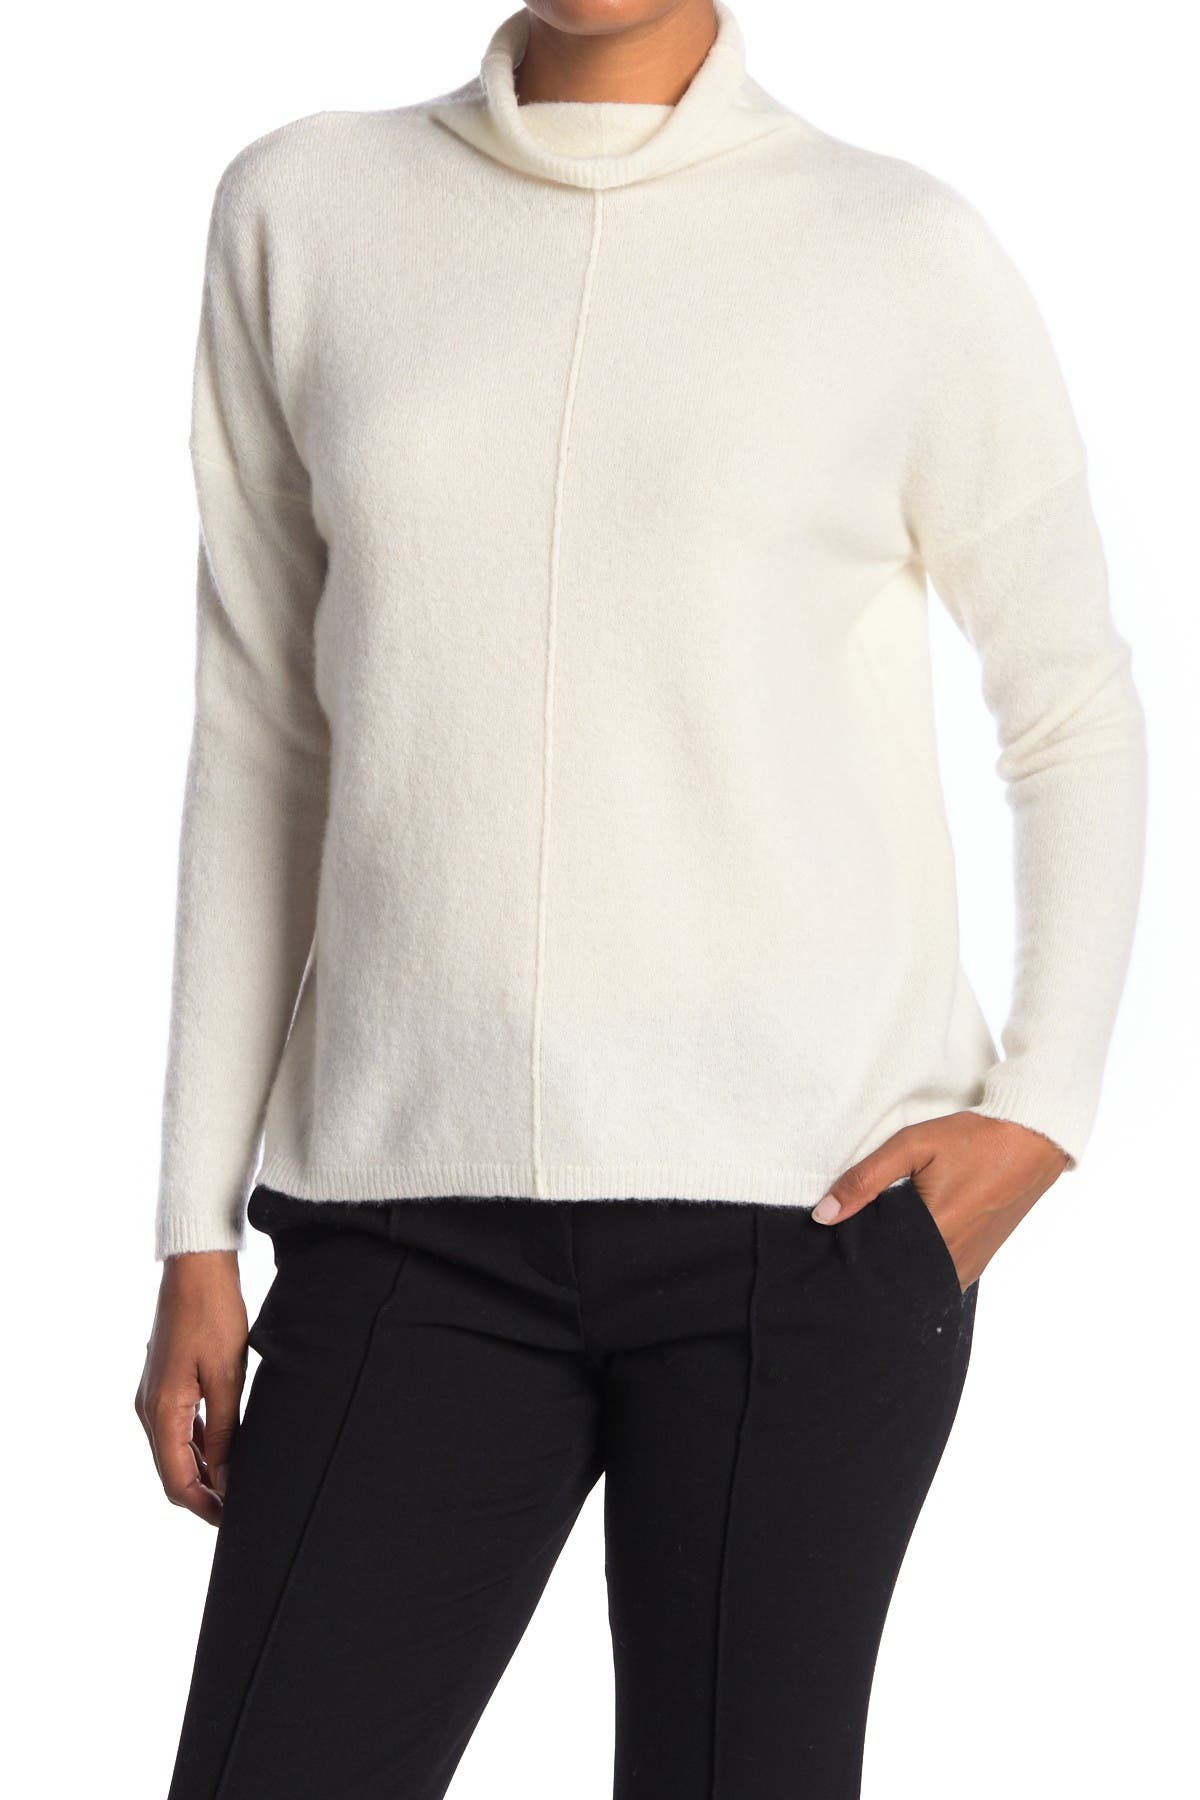 Image of Kinross Relaxed Funnel Neck Cashmere Blend Sweater